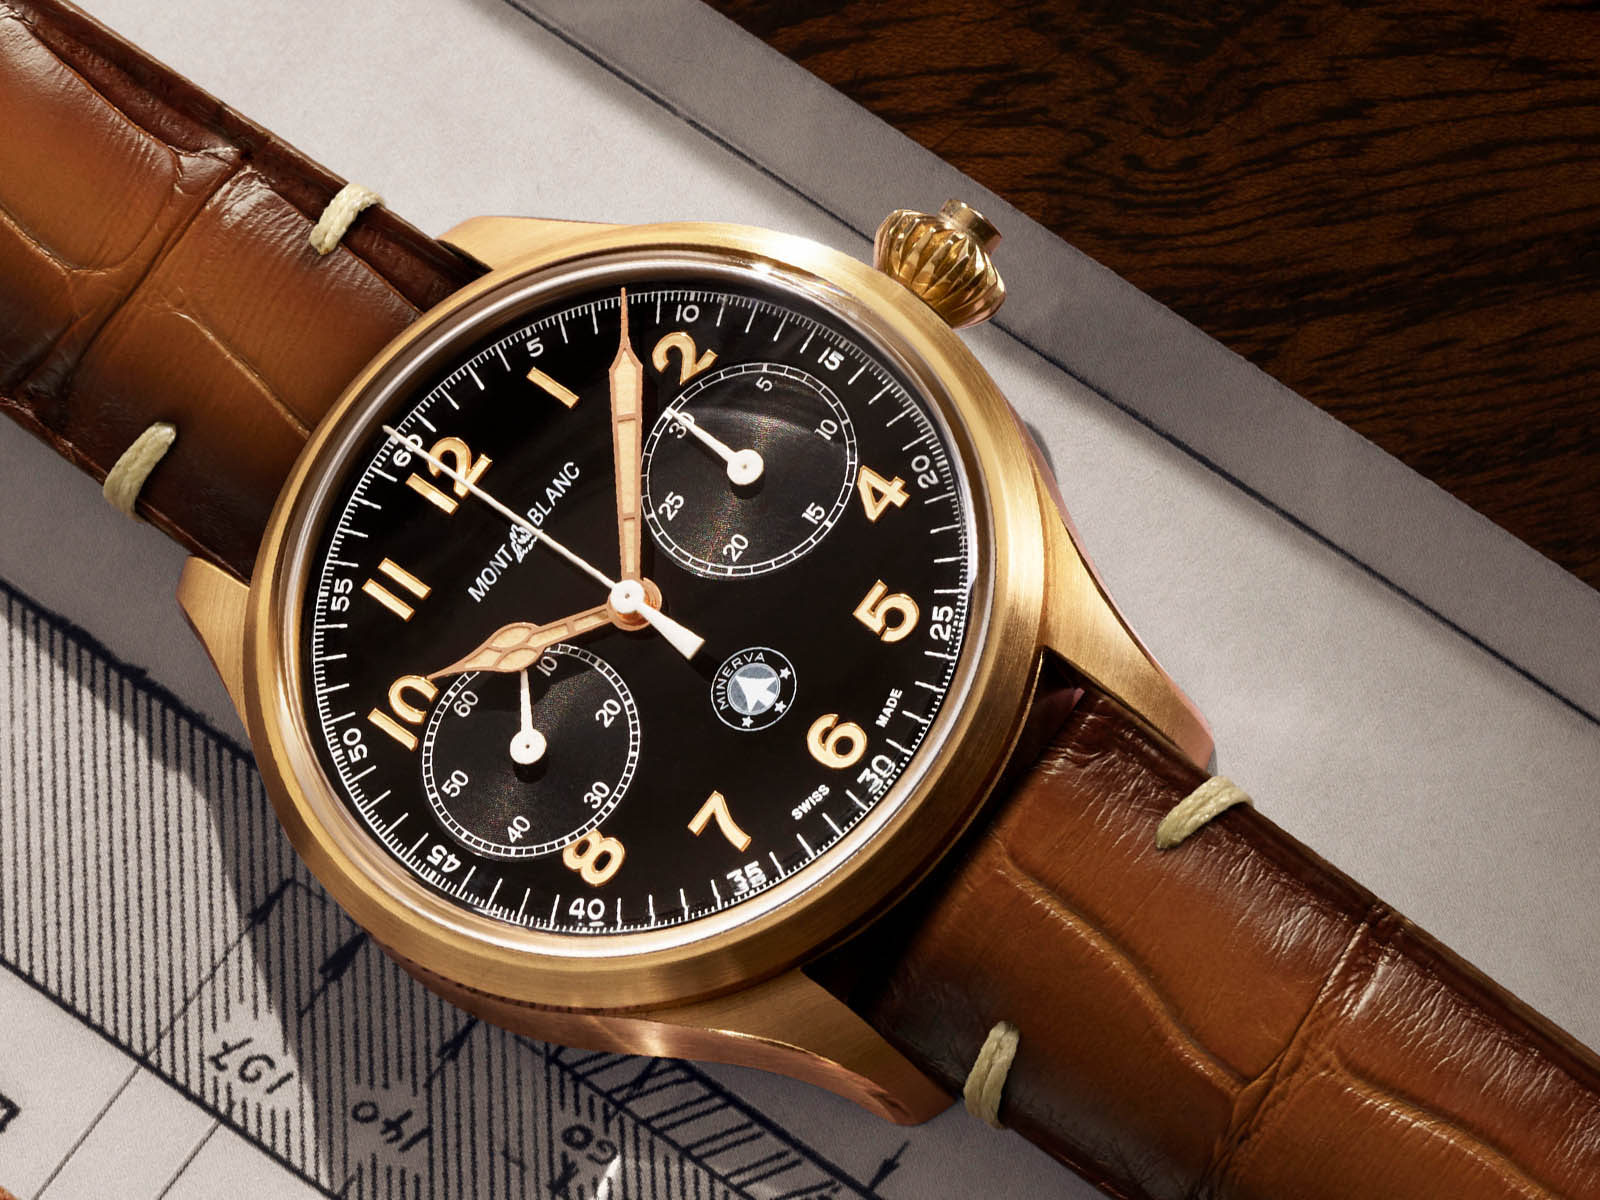 128506-montblanc-1858-monopusher-chronograph-origins-limited-edition-100-2.jpg